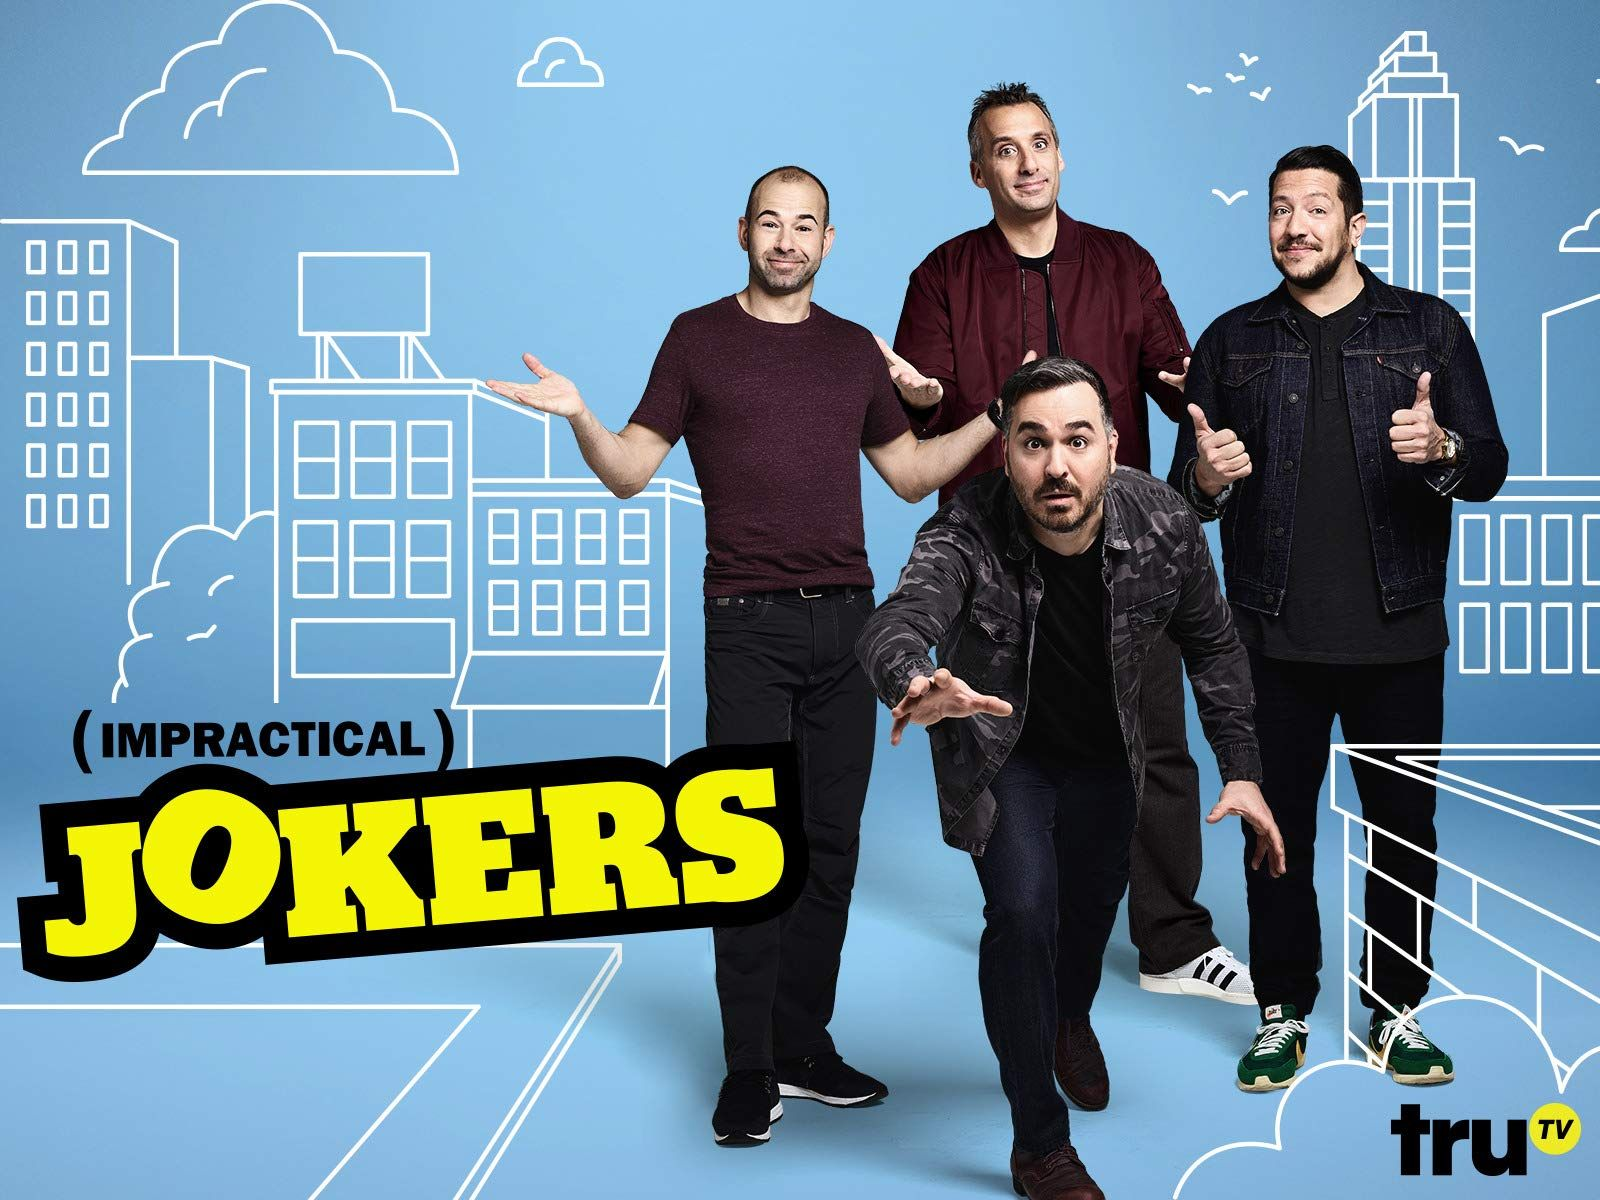 Impractical Jokers Season 8 Episode 16 The Prize Fighter